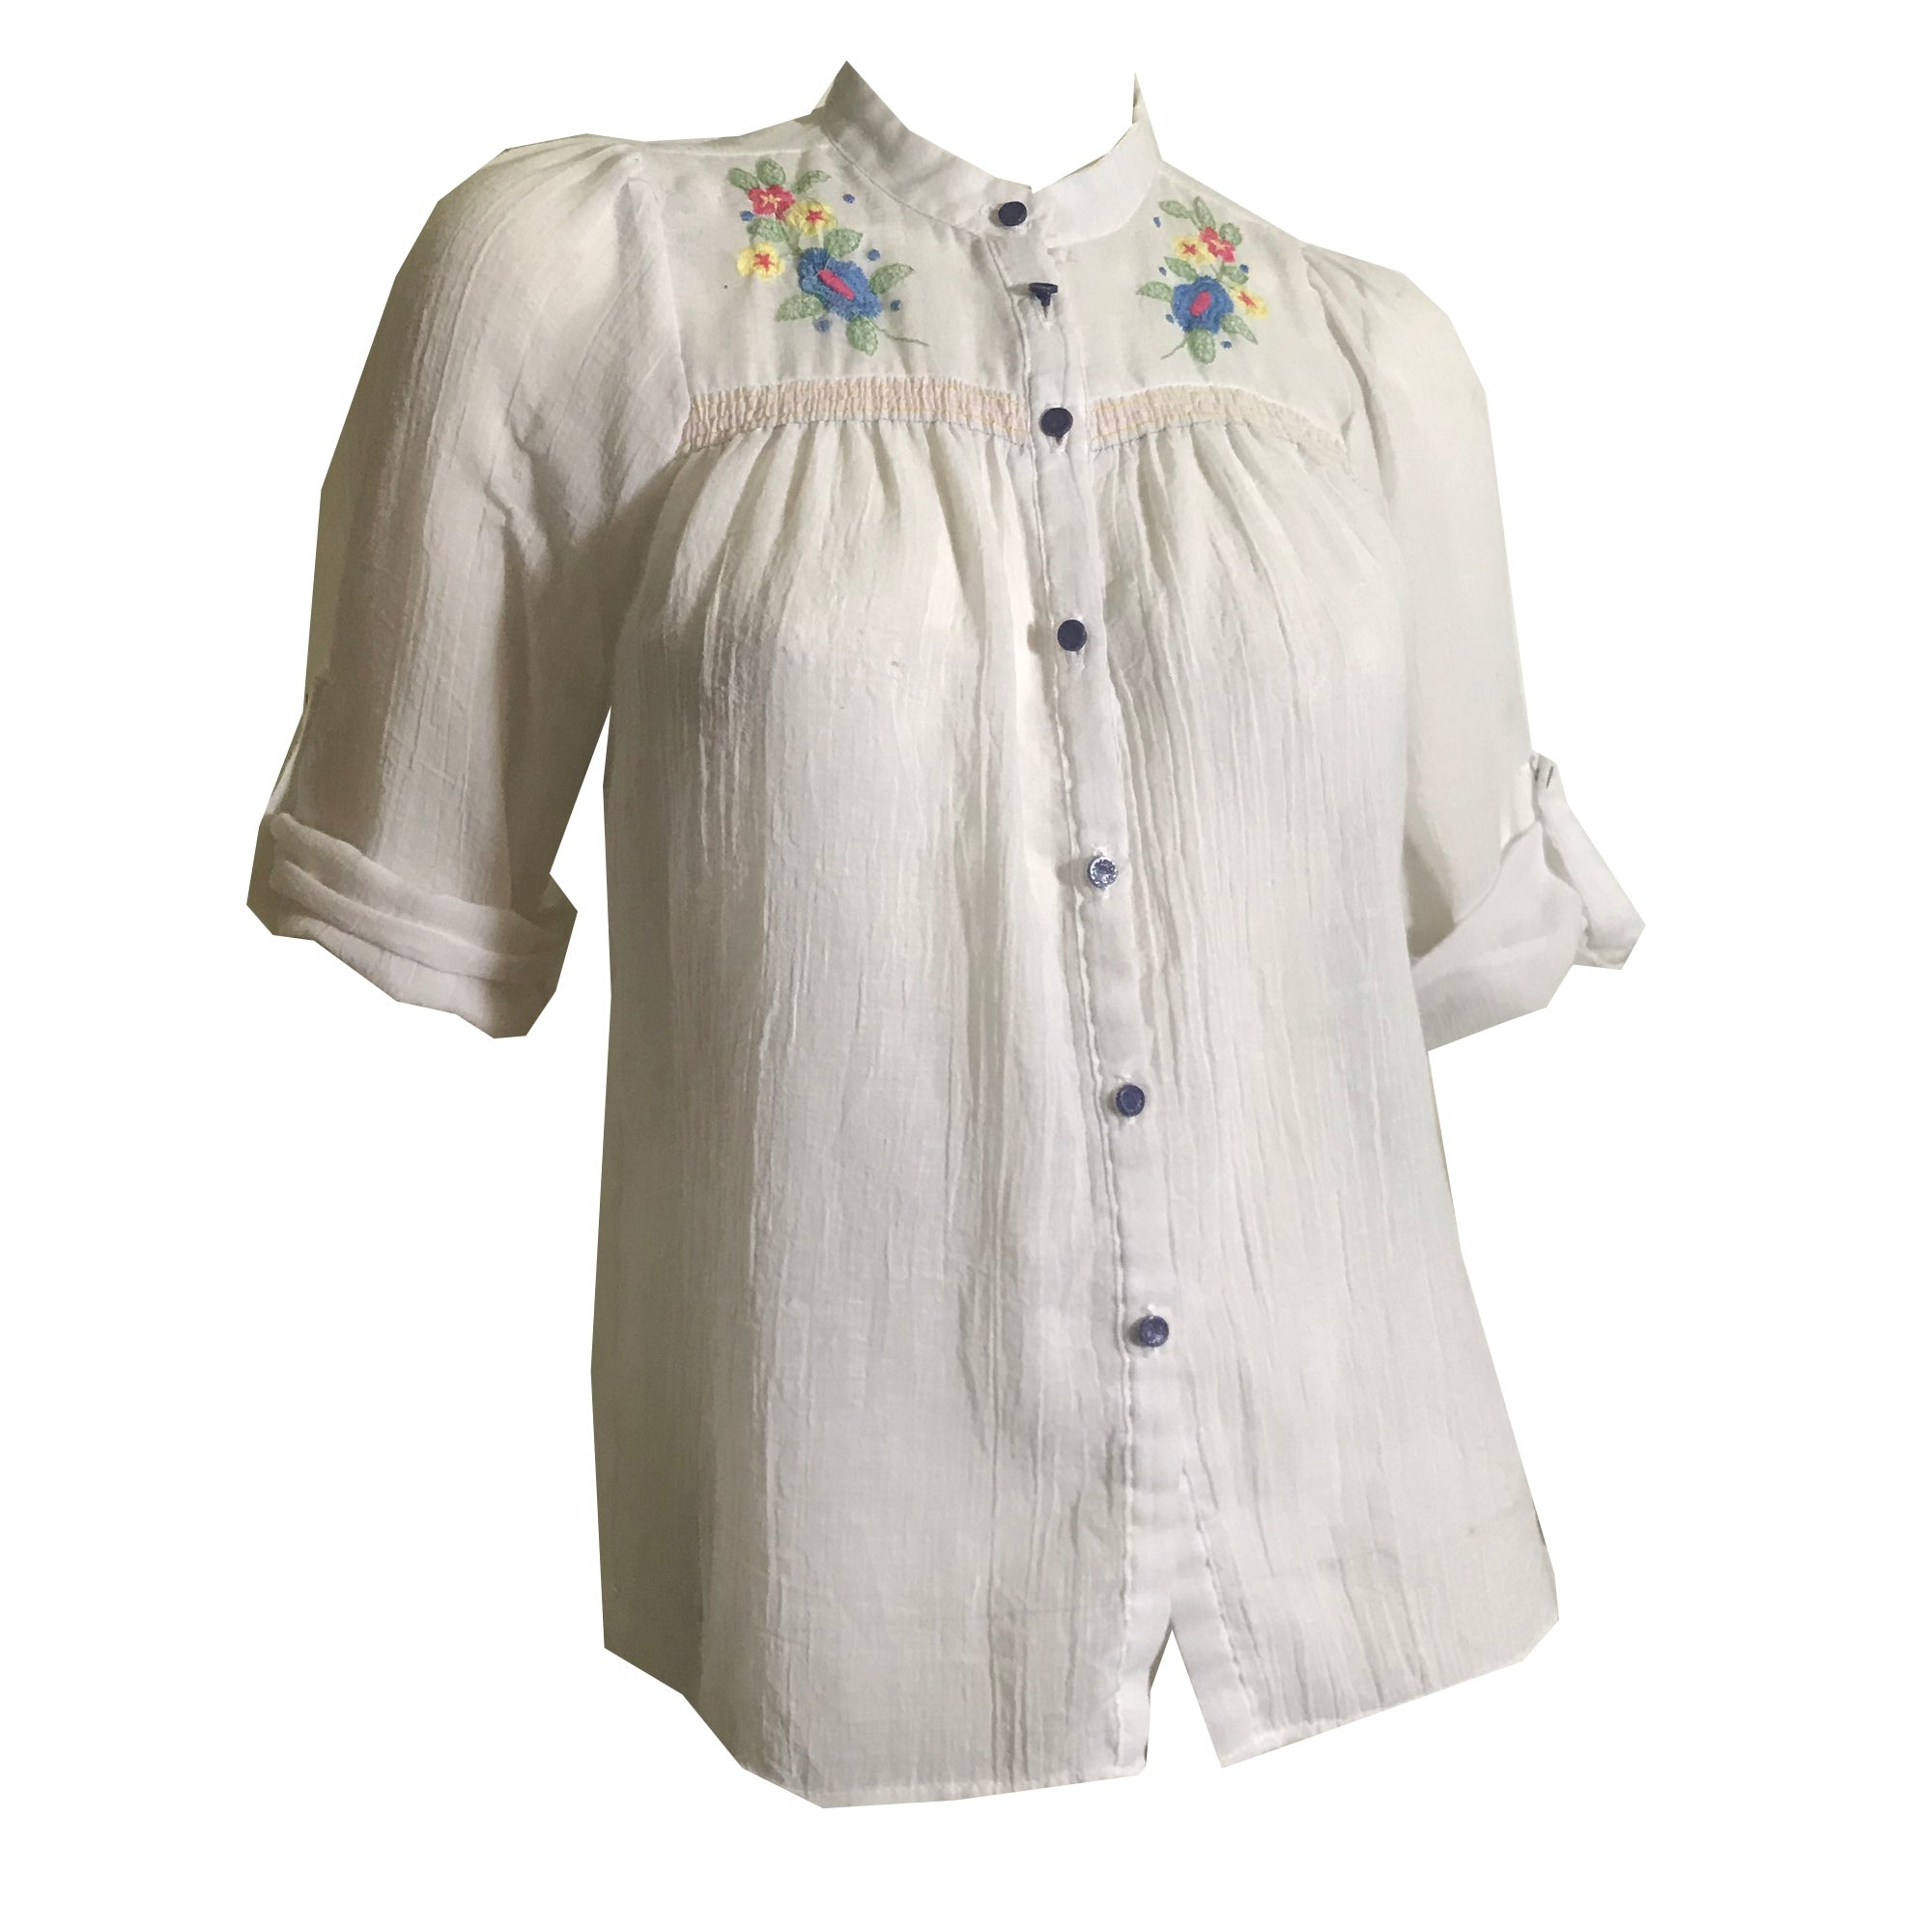 Folkloric Pastel Flora Embroidered Peasant Blouse circa 1970s